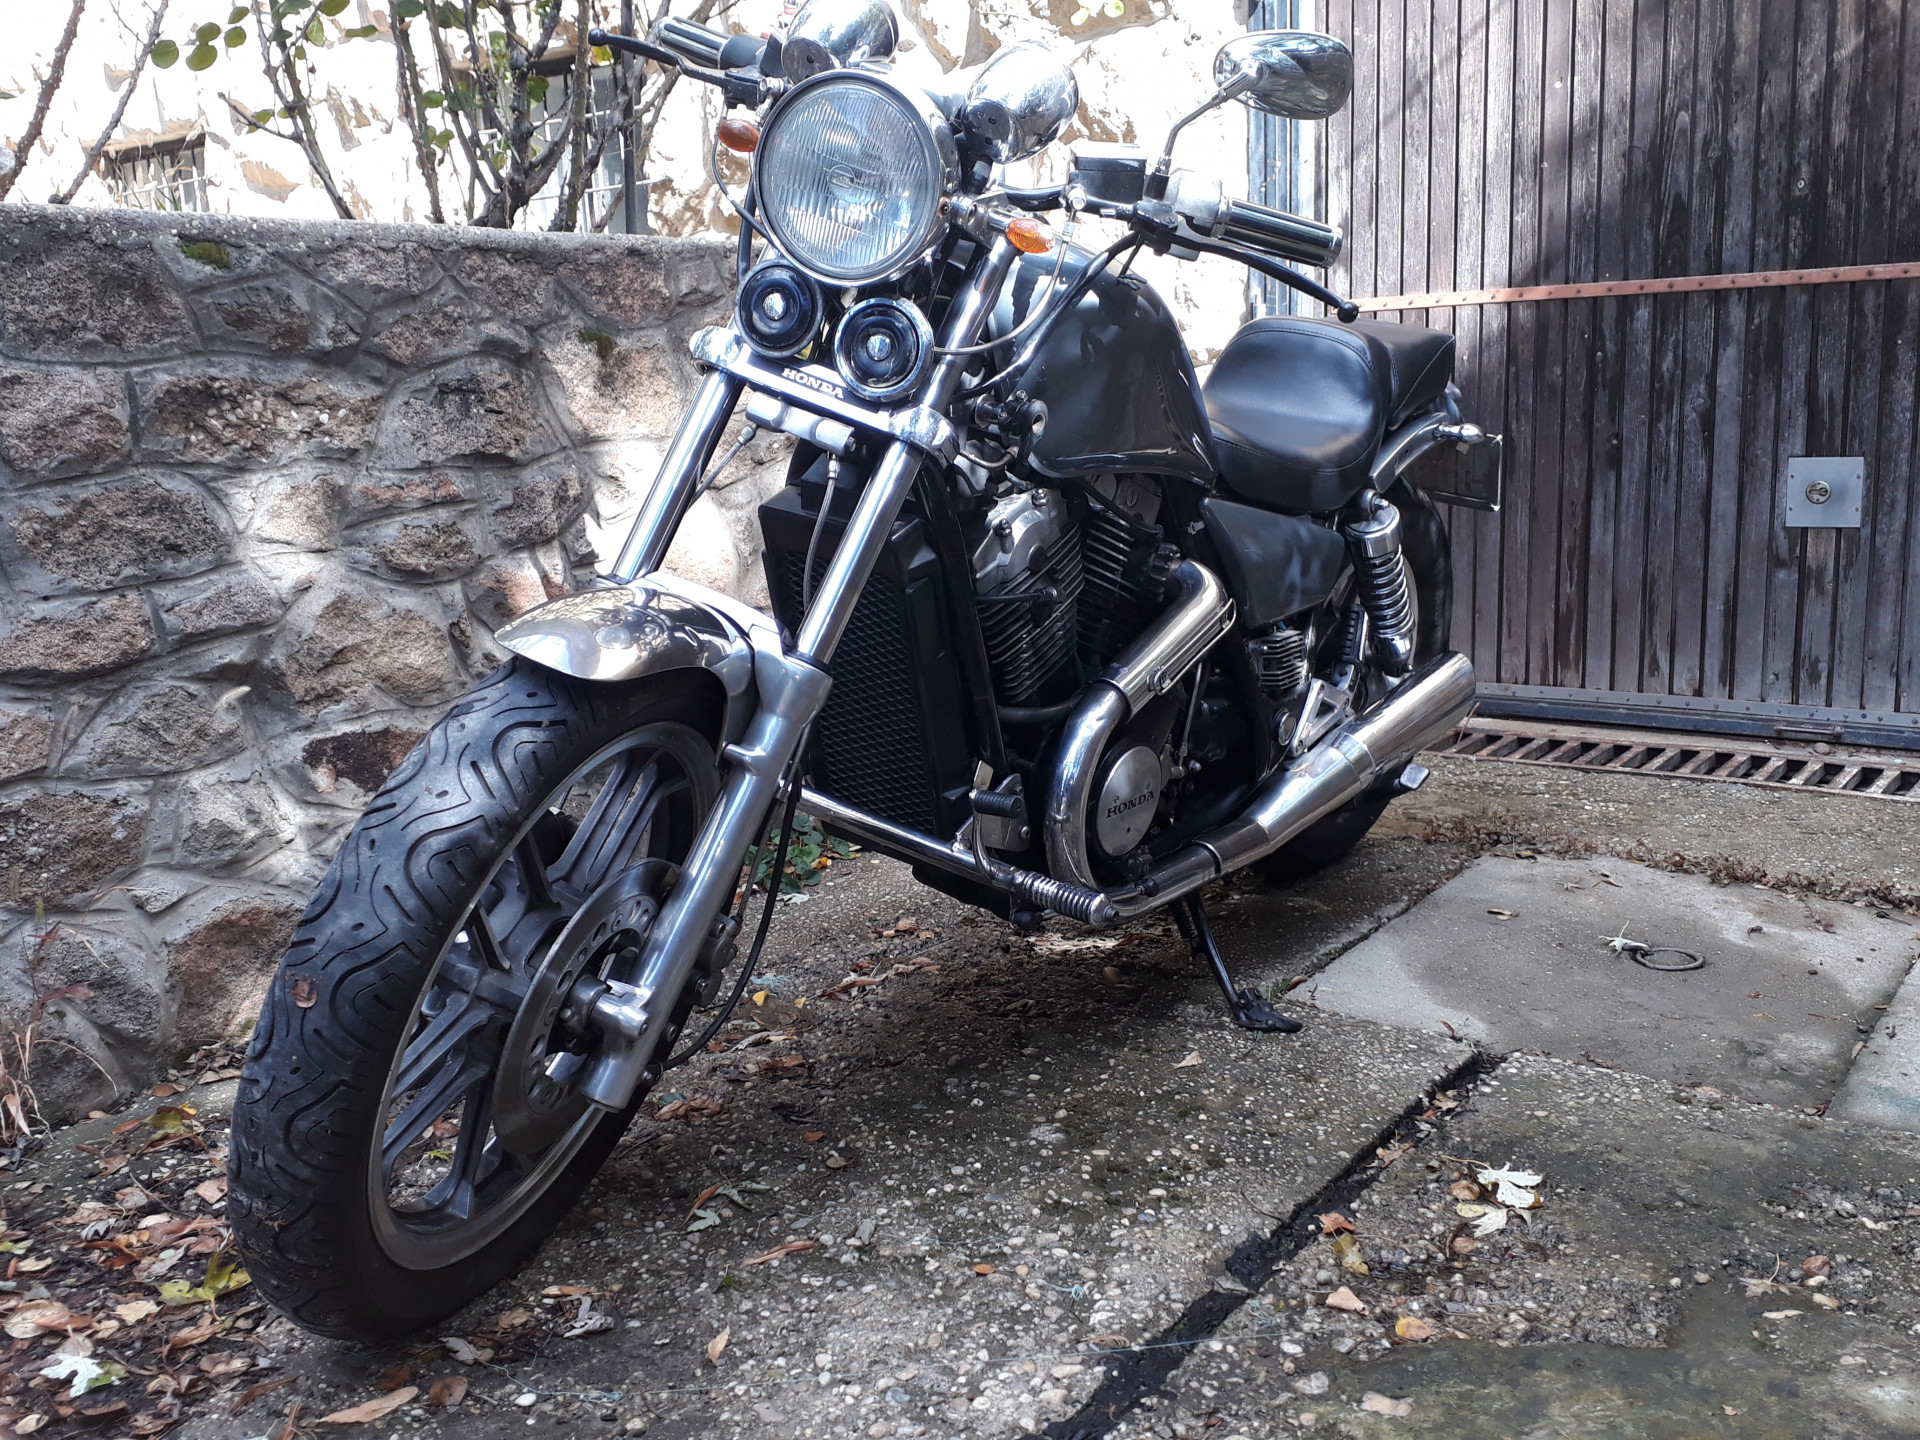 HONDA NV 750C SHADOW, 1. kép